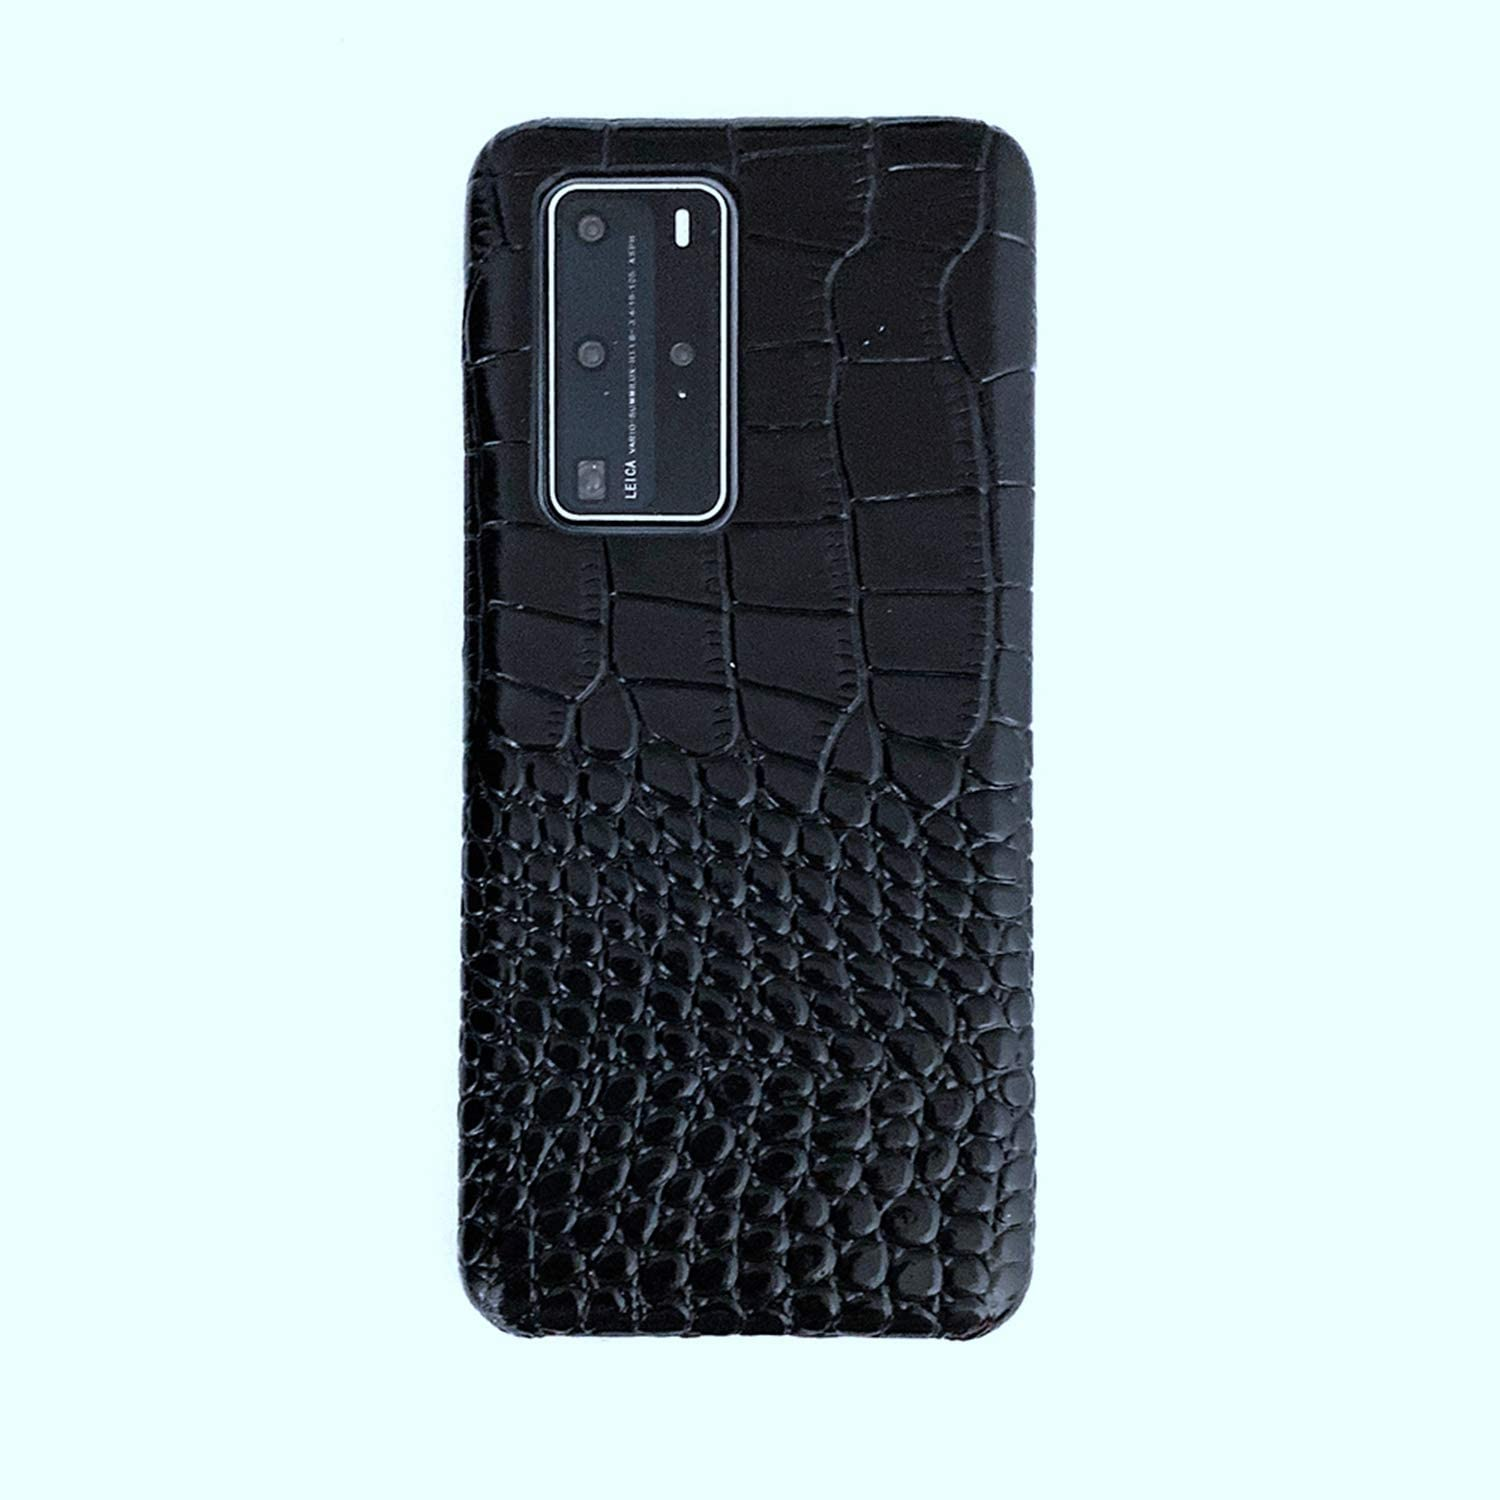 FHZXHY Huawei P40 Pro Phone Case Crocodile Pattern Leather Back Case Cover Protector Case for Huawei p40 pro 6.58 inch 5g 2020-Black